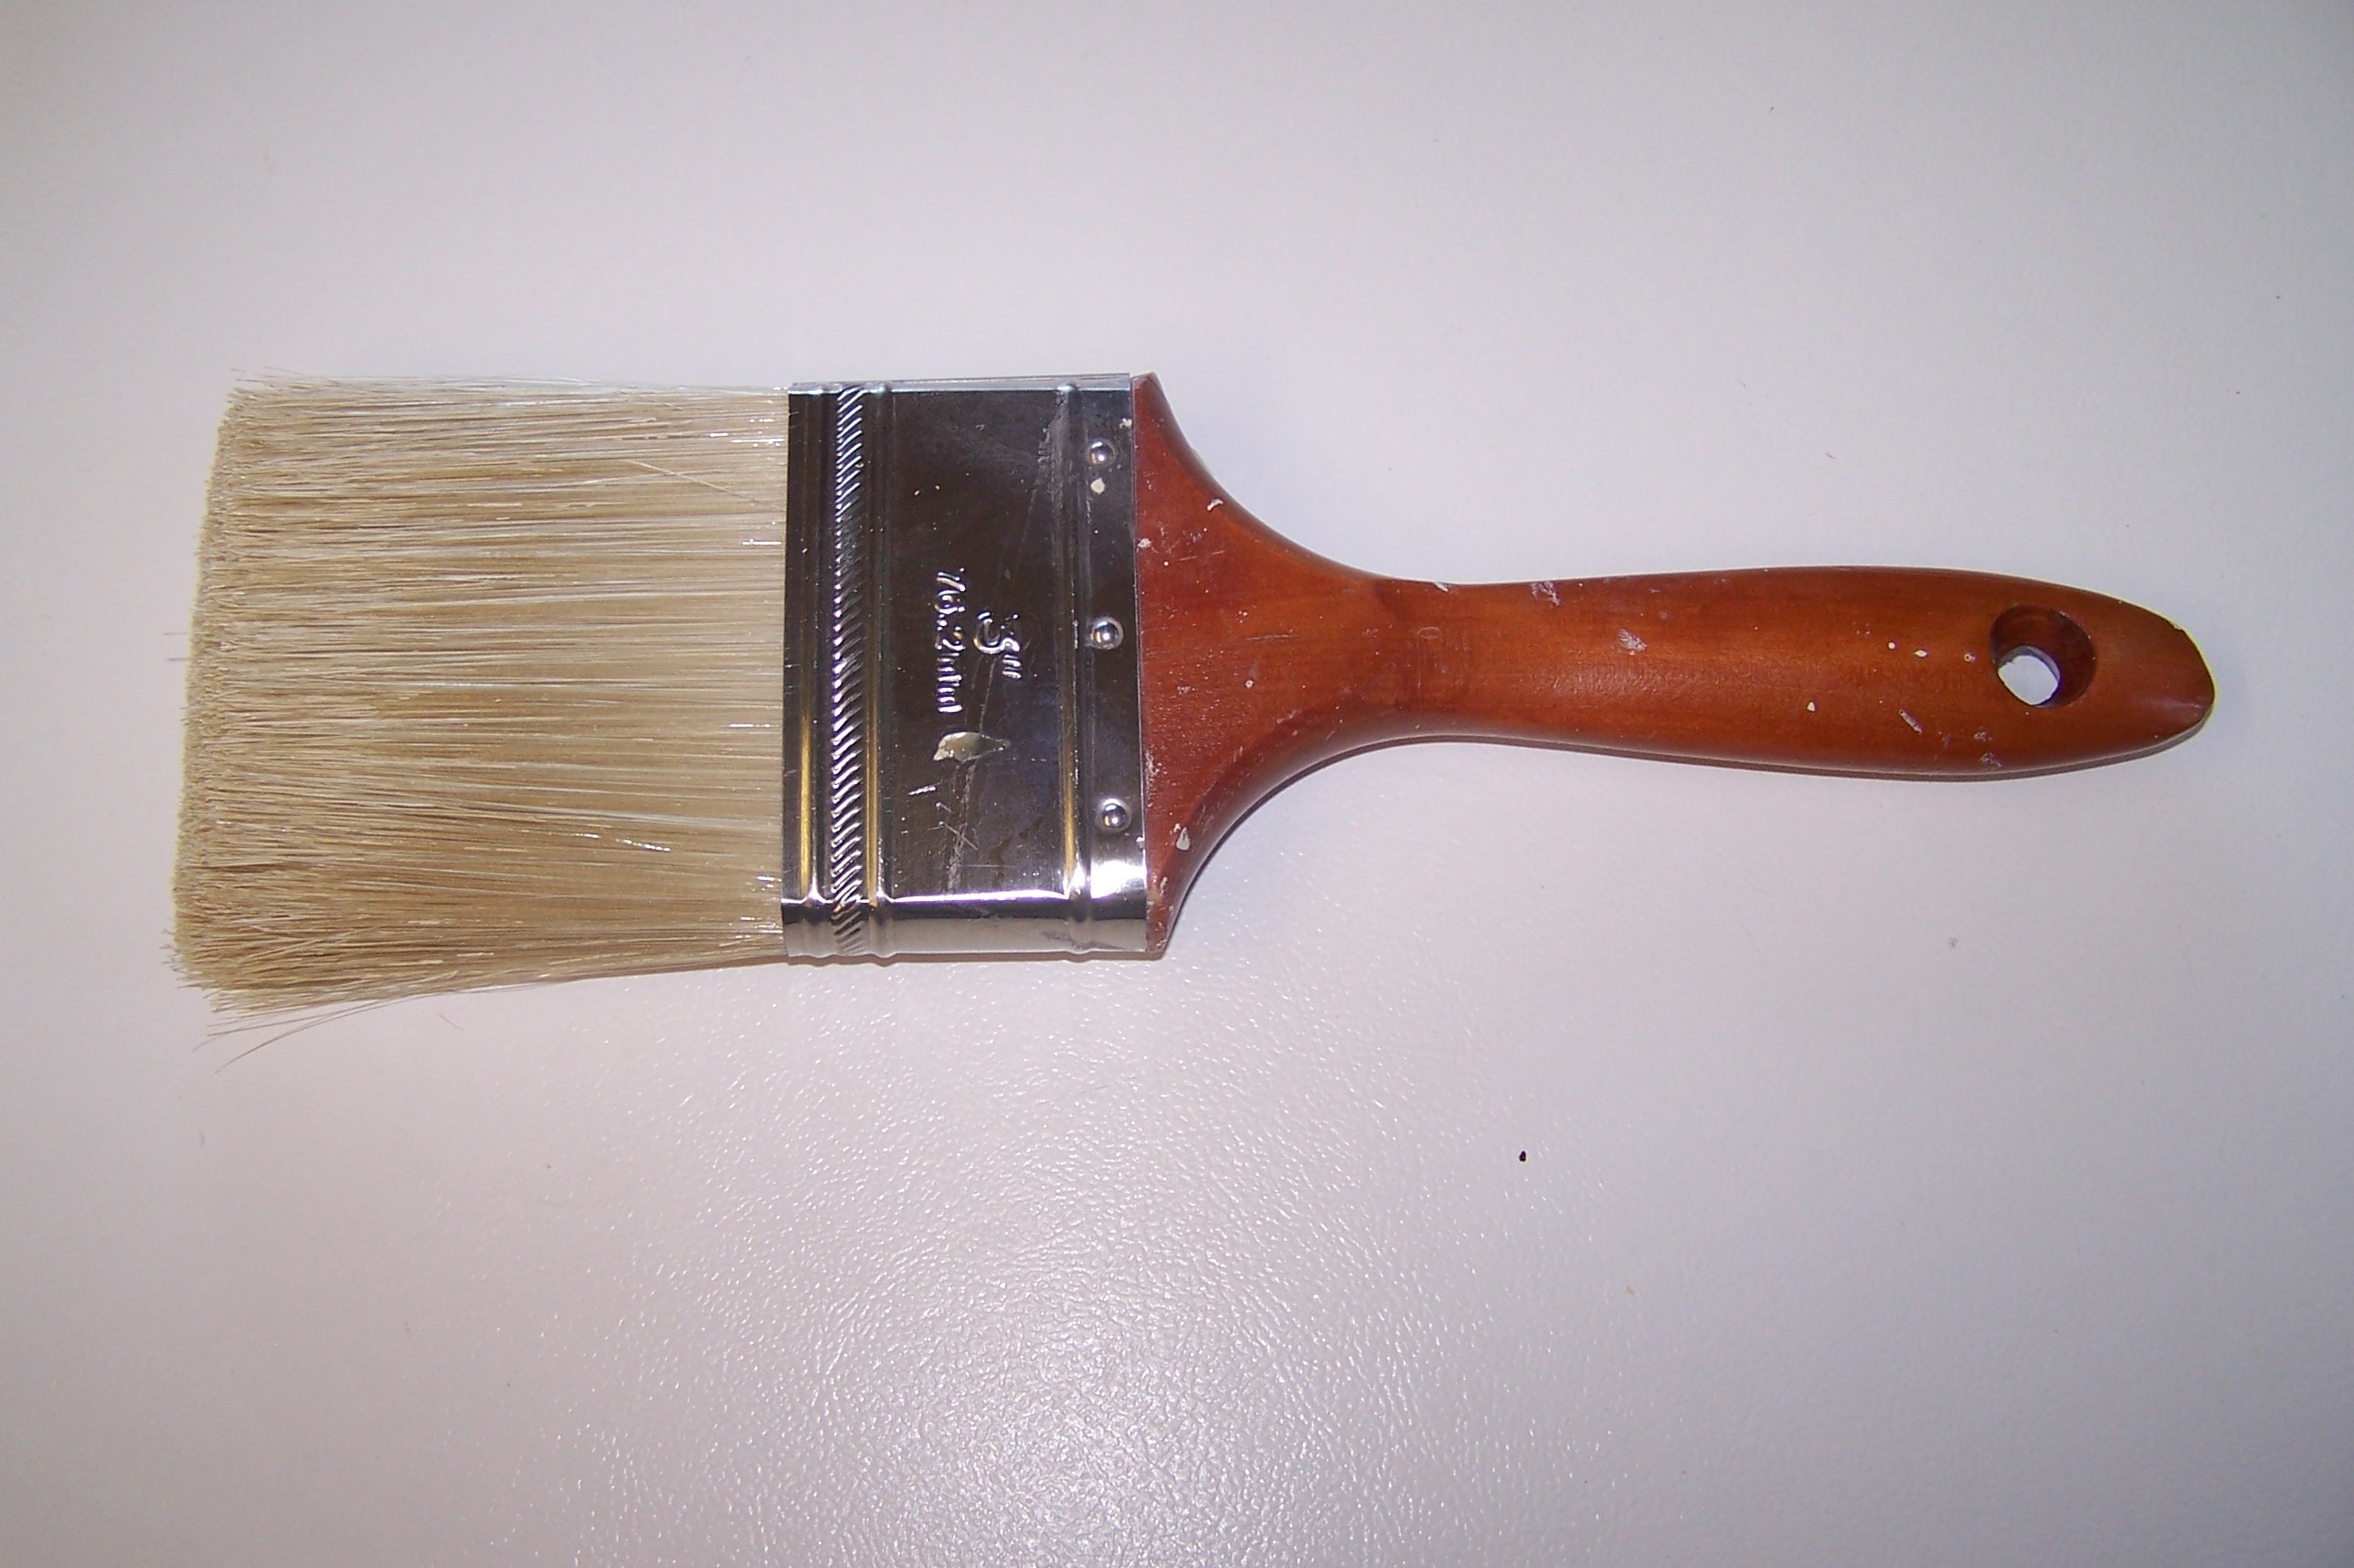 Paintbrush, Paint, Brush, Bristles, HQ Photo